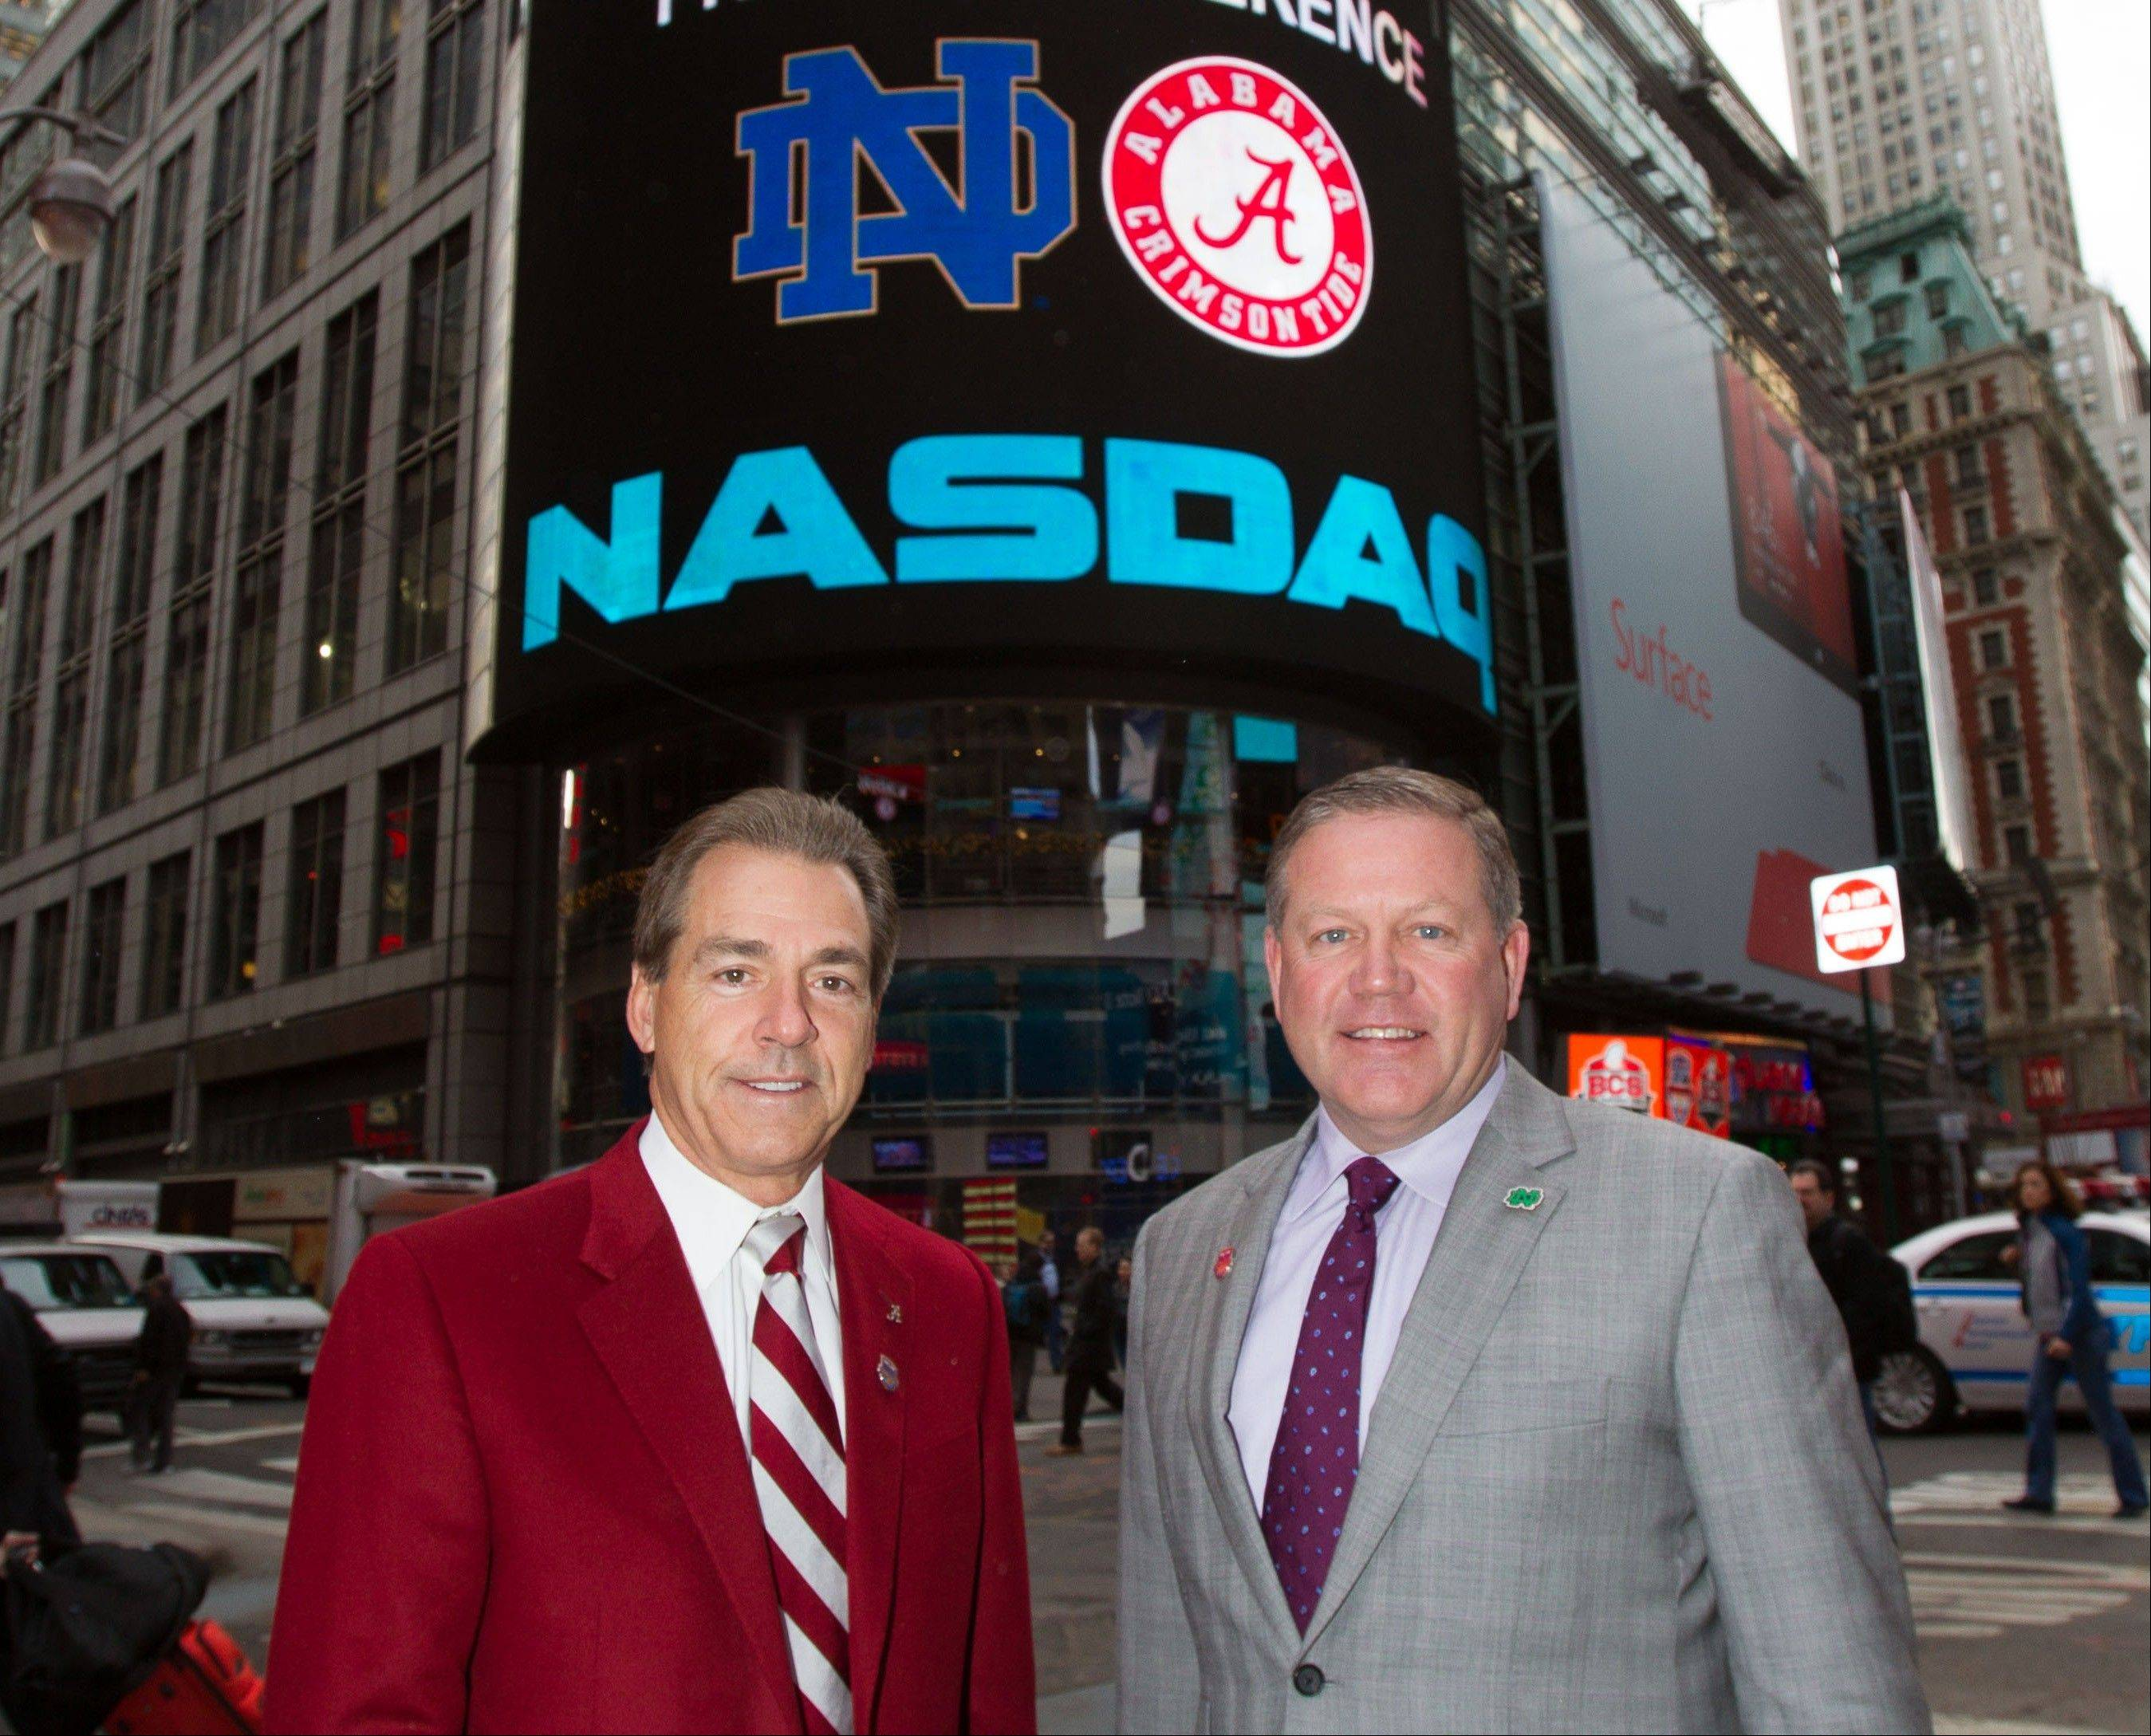 University of Alabama football coach Nick Saban, left, poses Wednesday with Notre Dame football coach Brian Kelly outside of the Nasdaq MarketSite in New York.